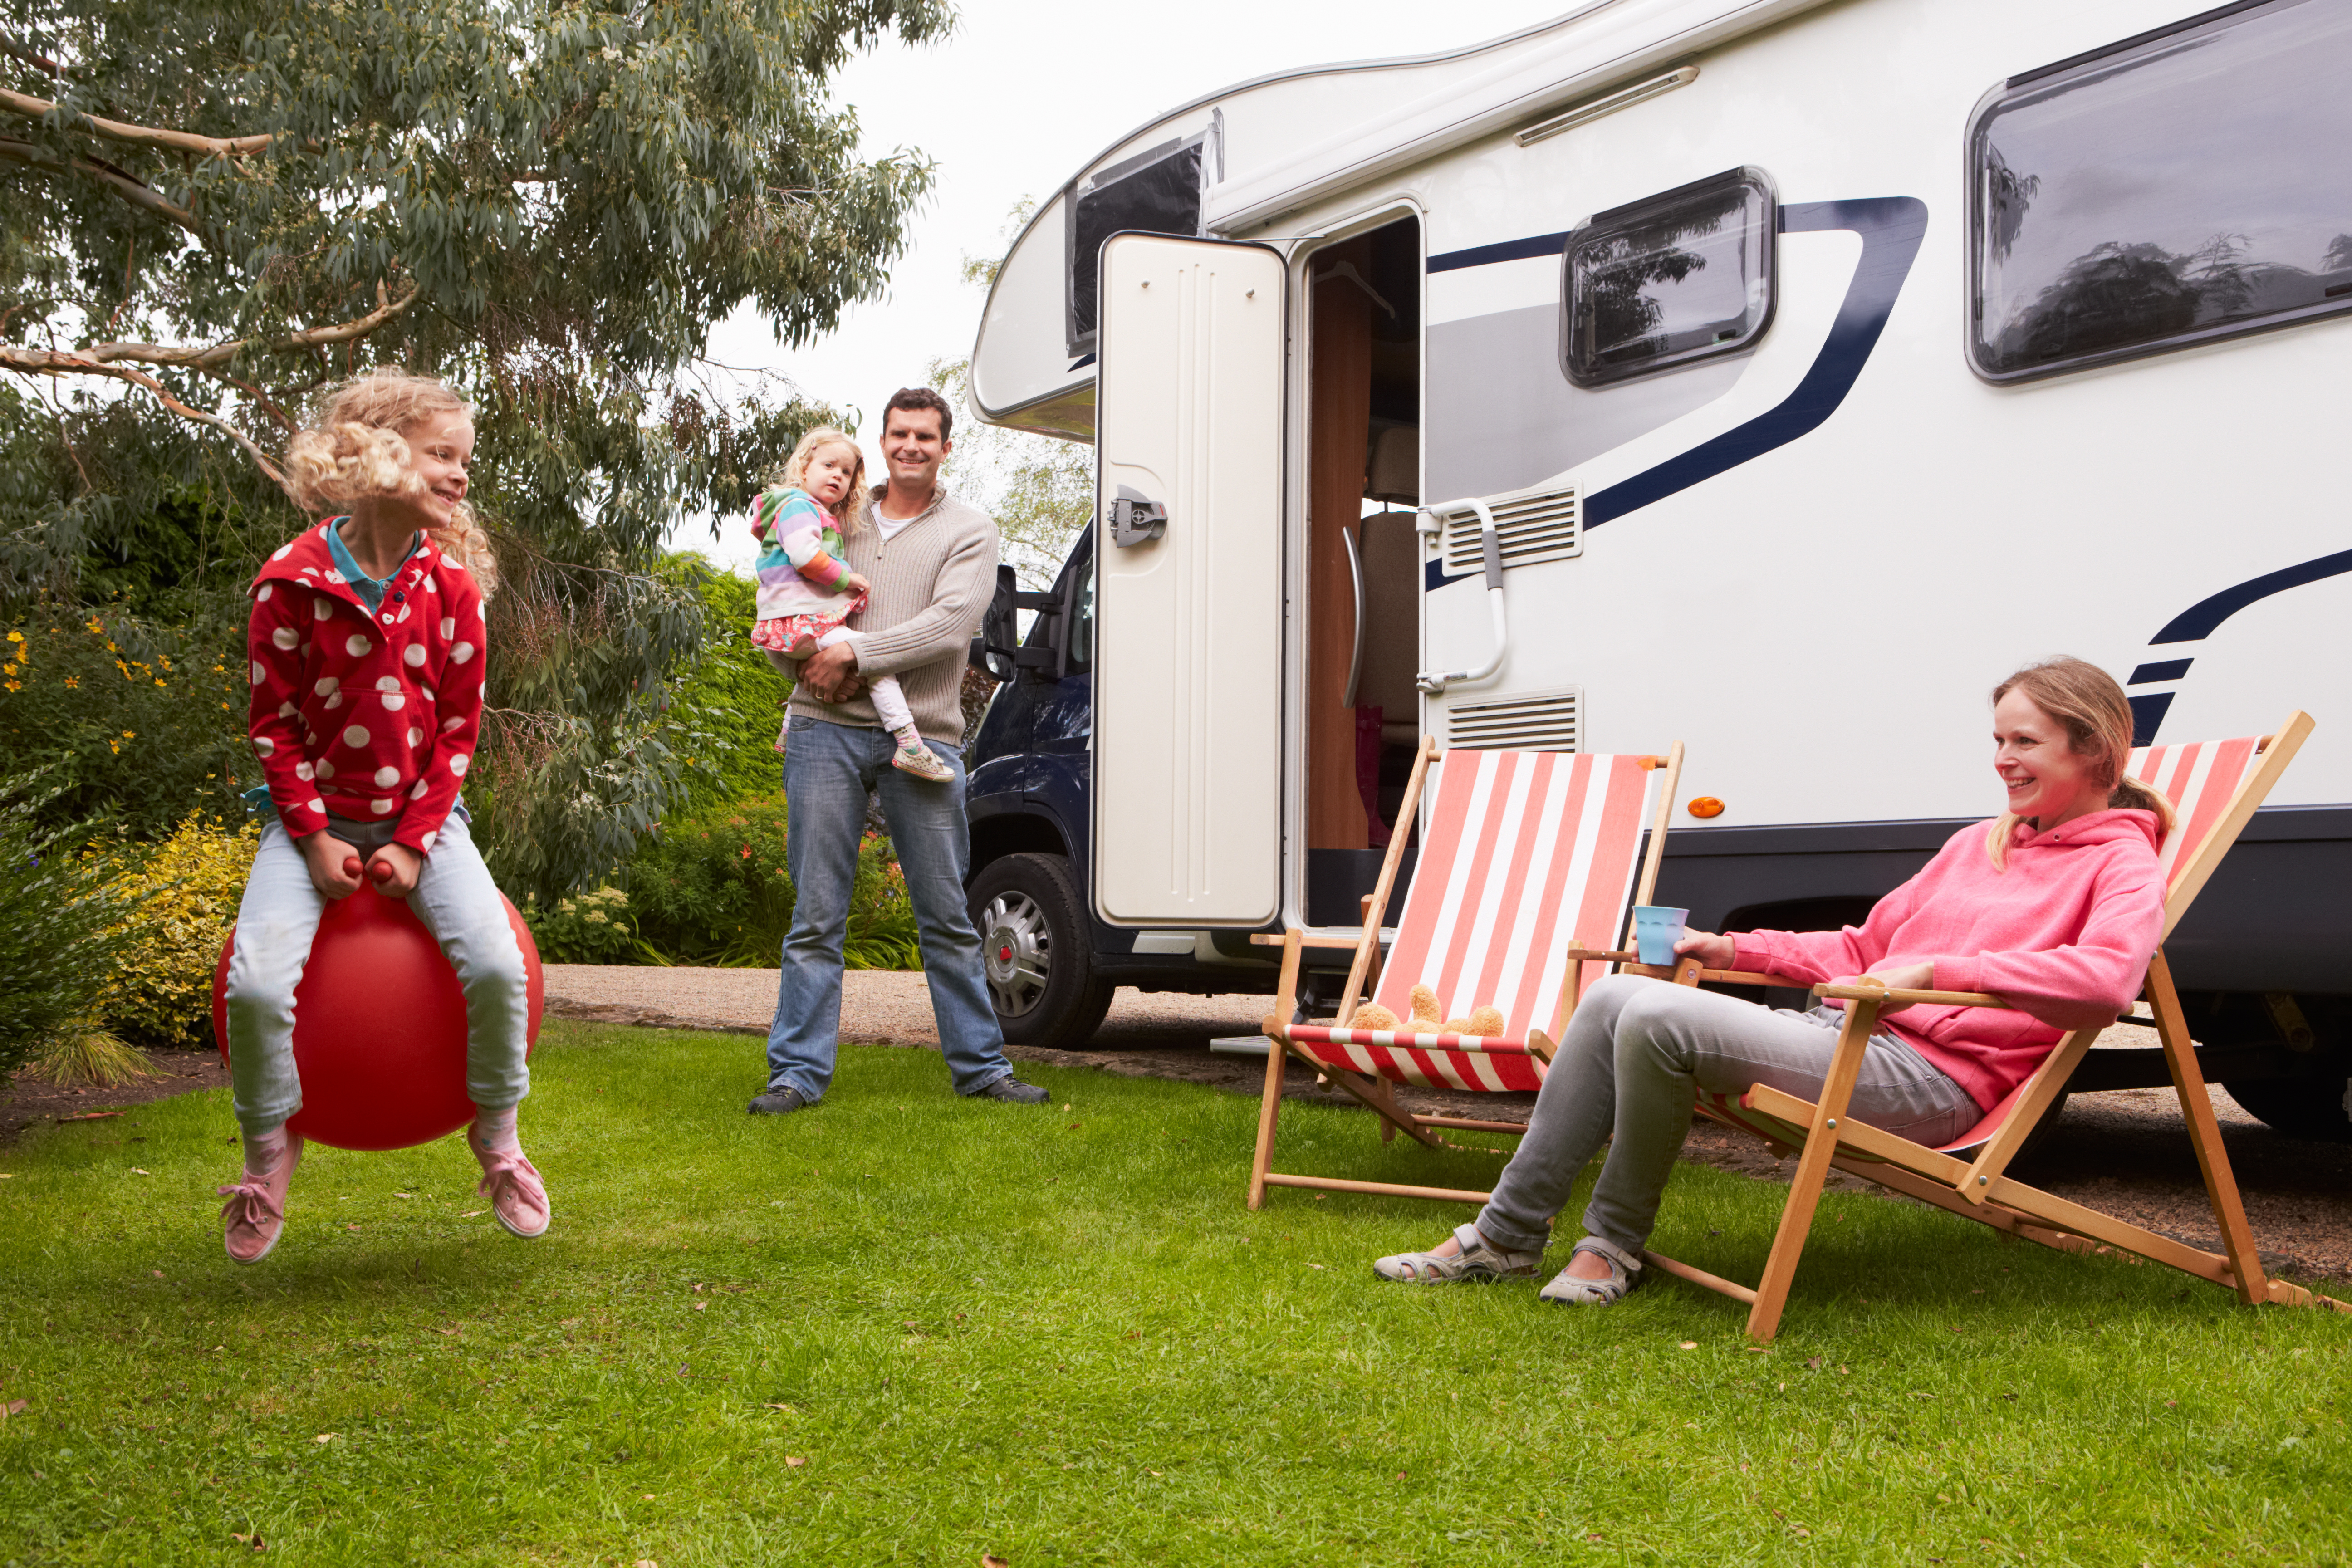 Family enjoying their new RV at the campground